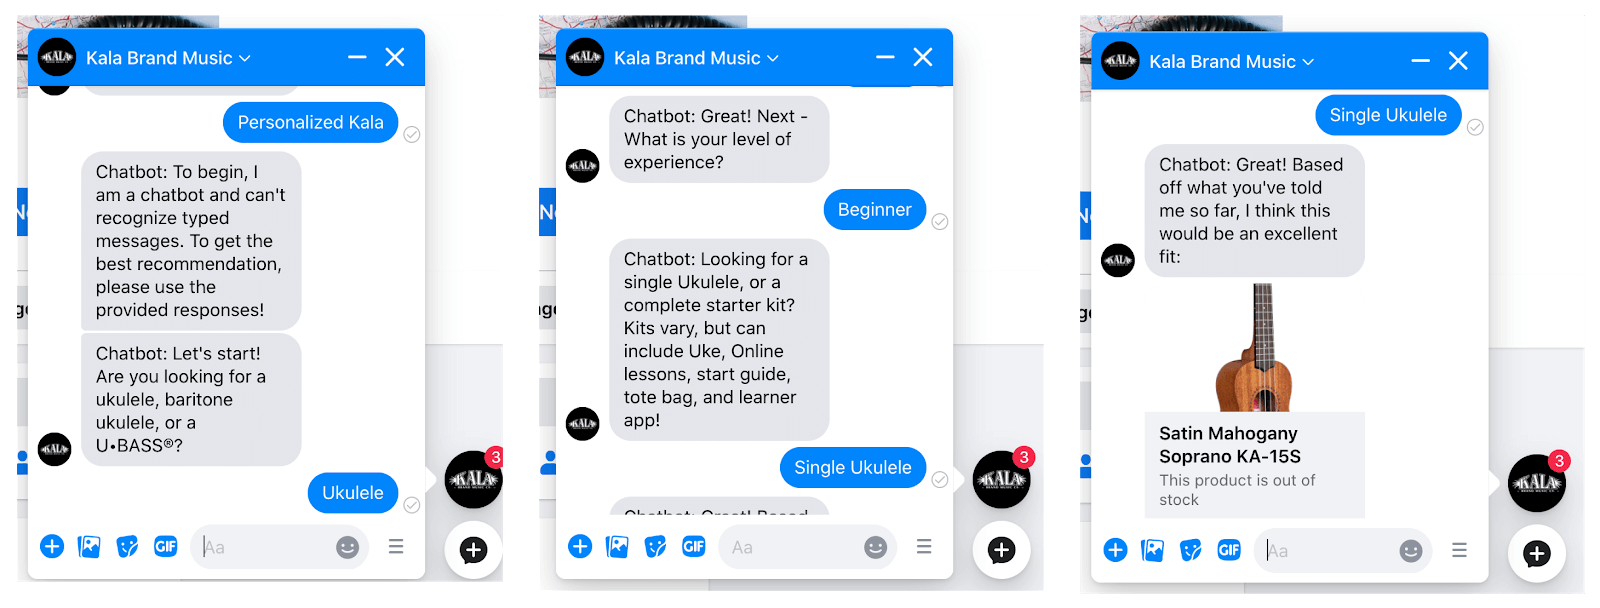 Screenshot of Kala Brand Music's Product Recommender in Messenger